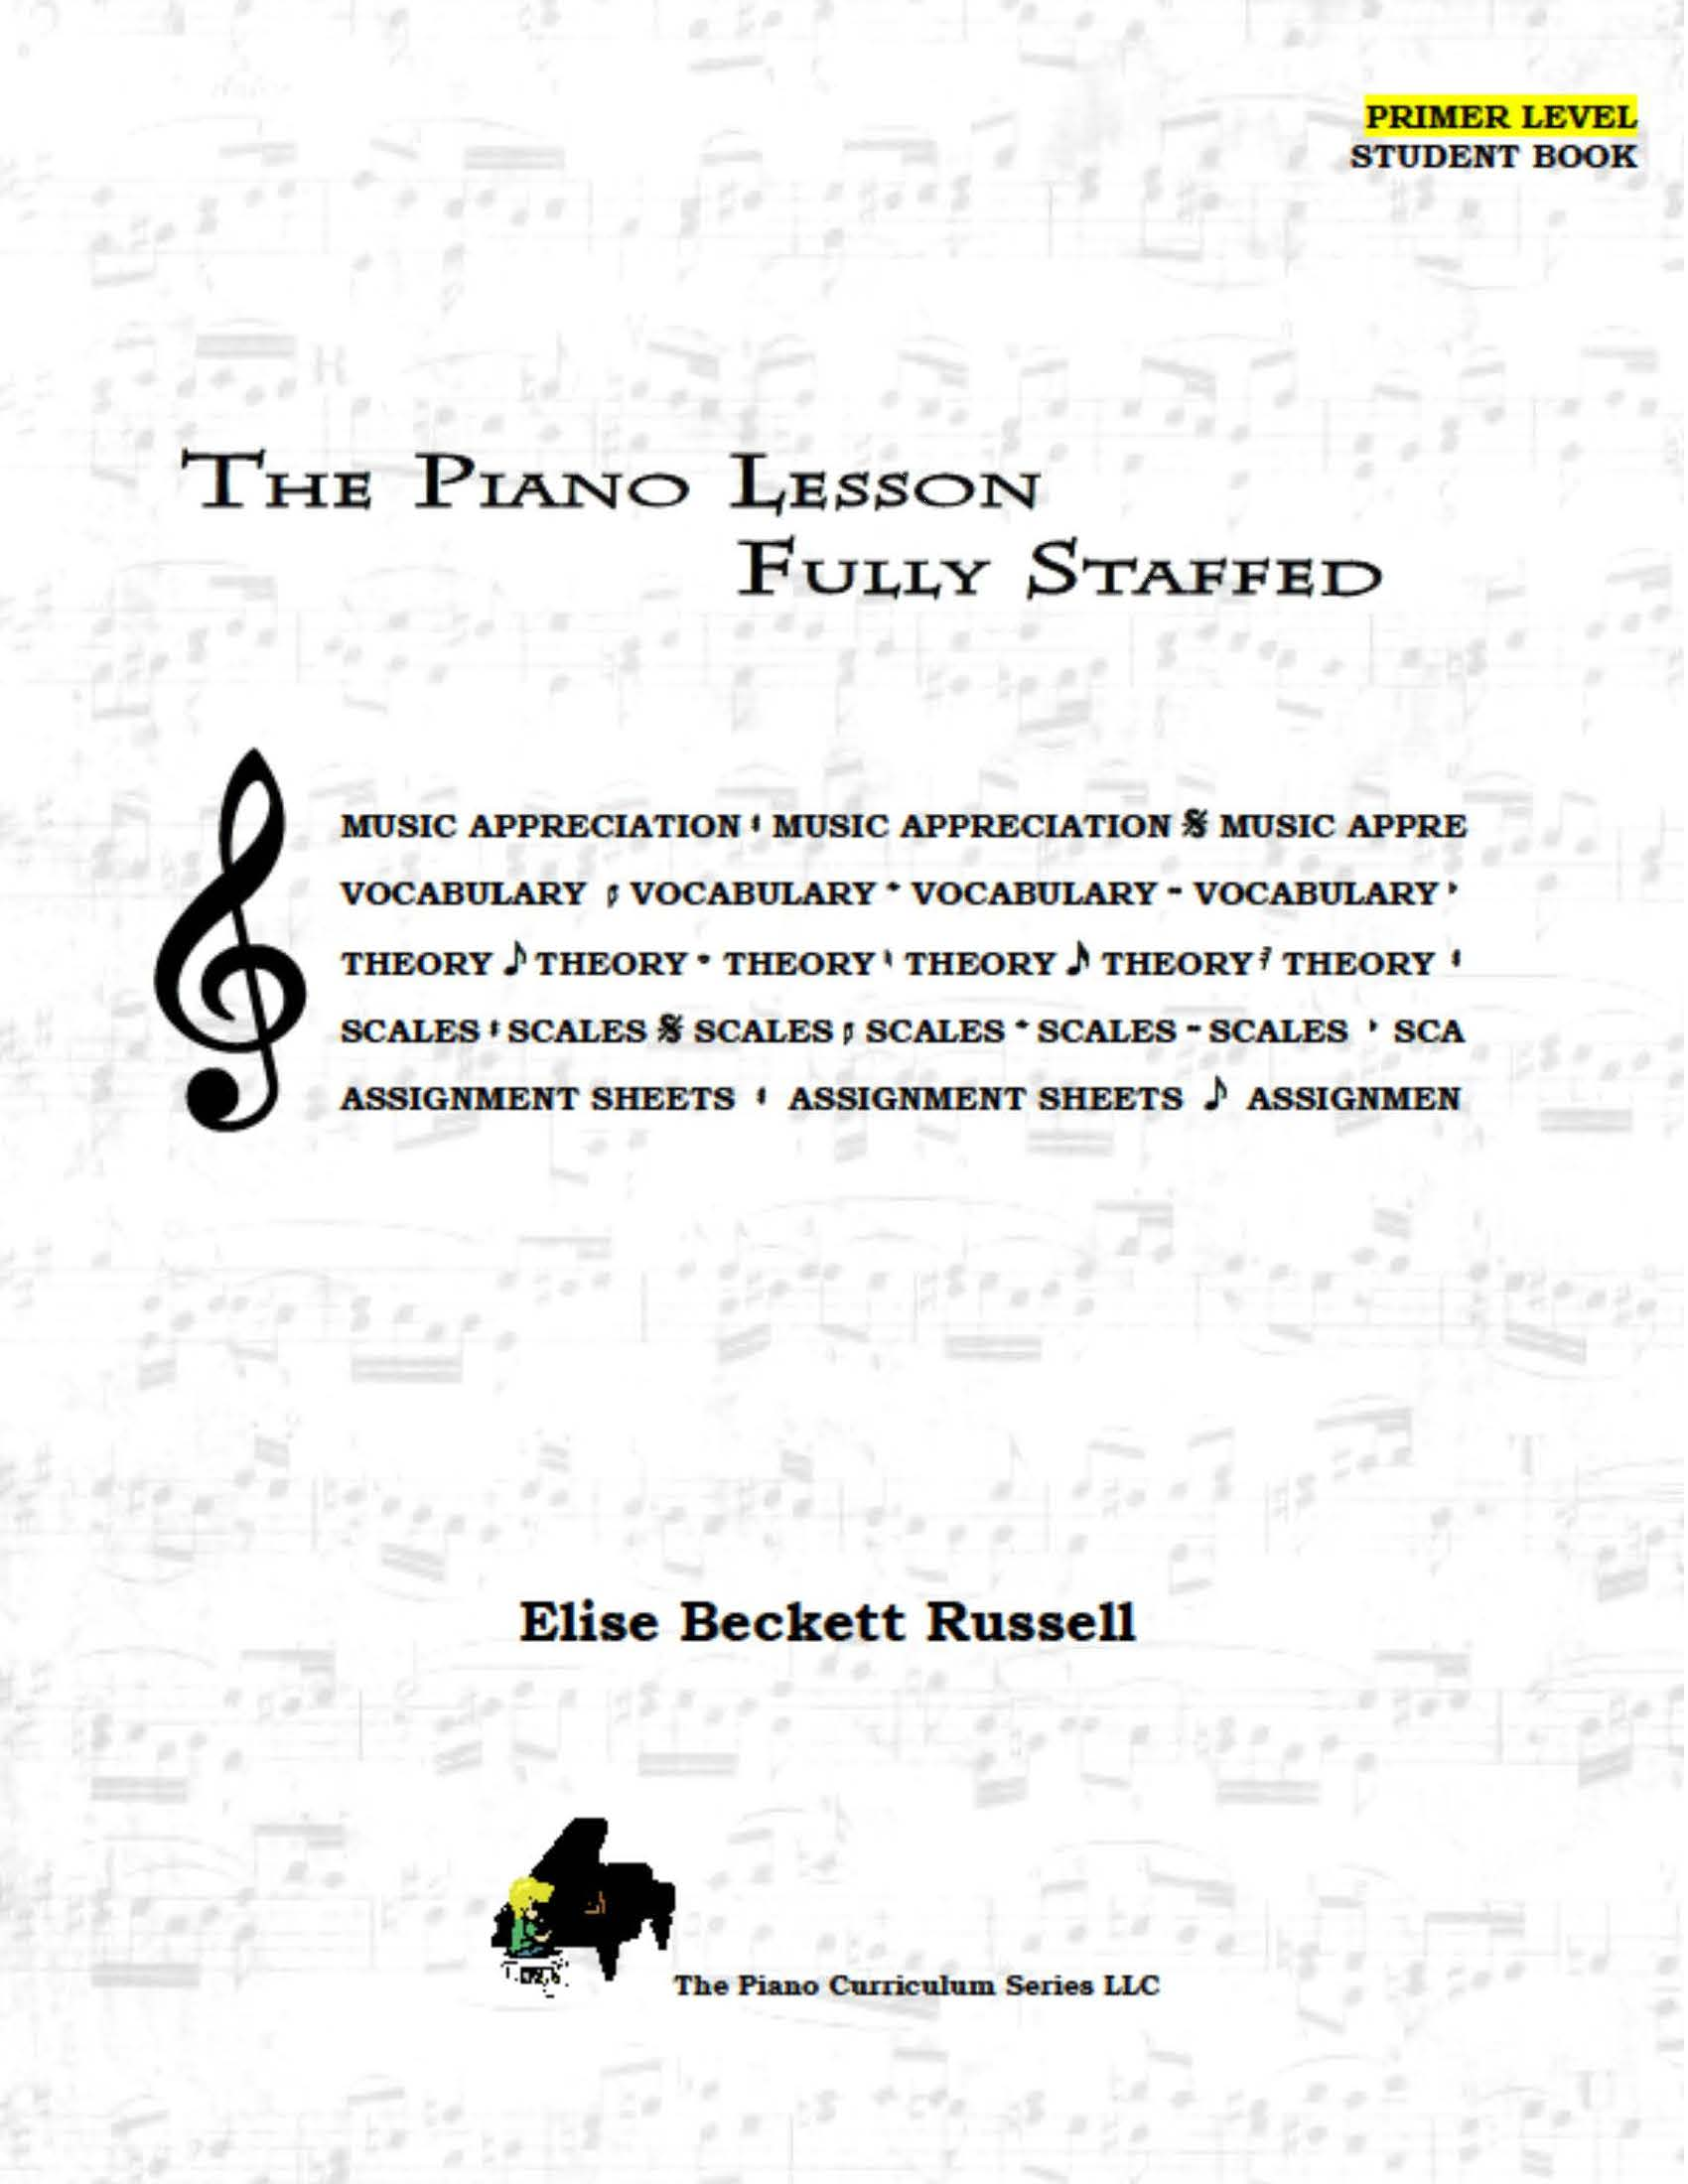 piano lab manual piano curriculum series rh pcspiano com piano lesson manual pdf piano lessons manila